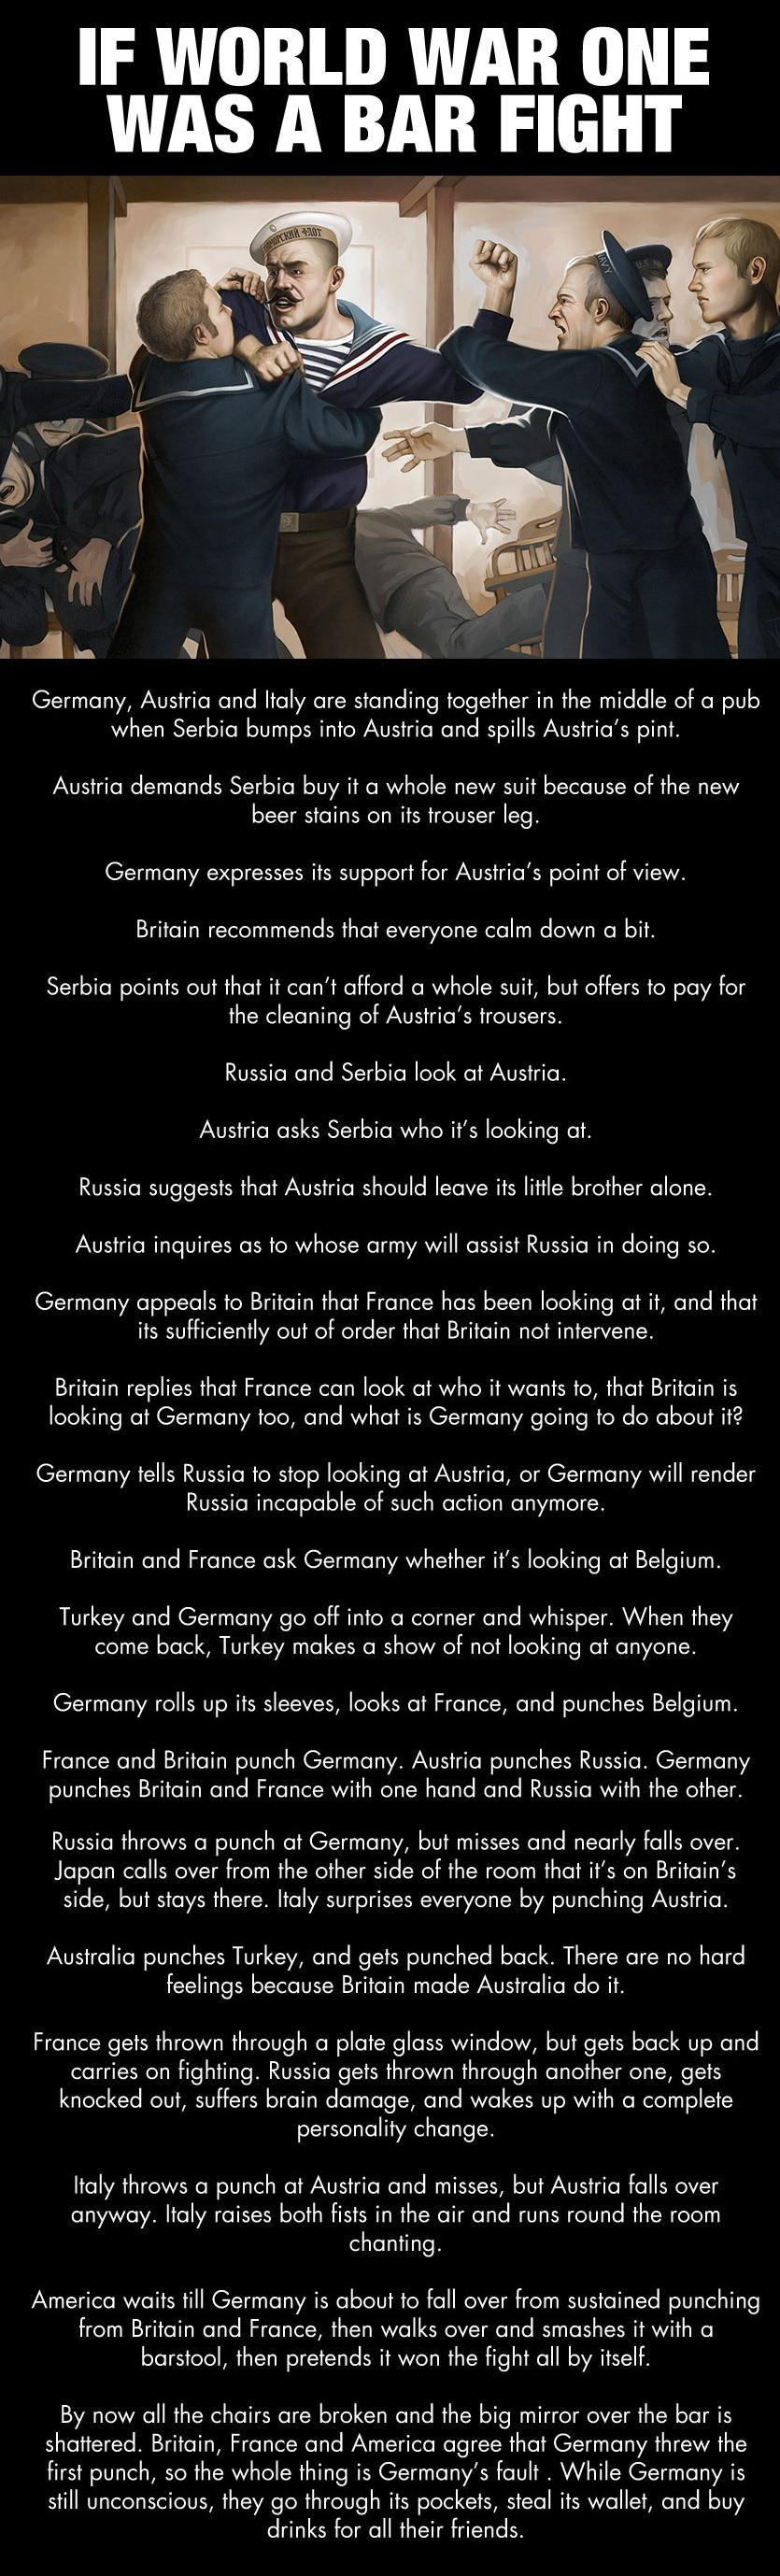 if world war one was a bar fight, germany, austria, france, italy, britain